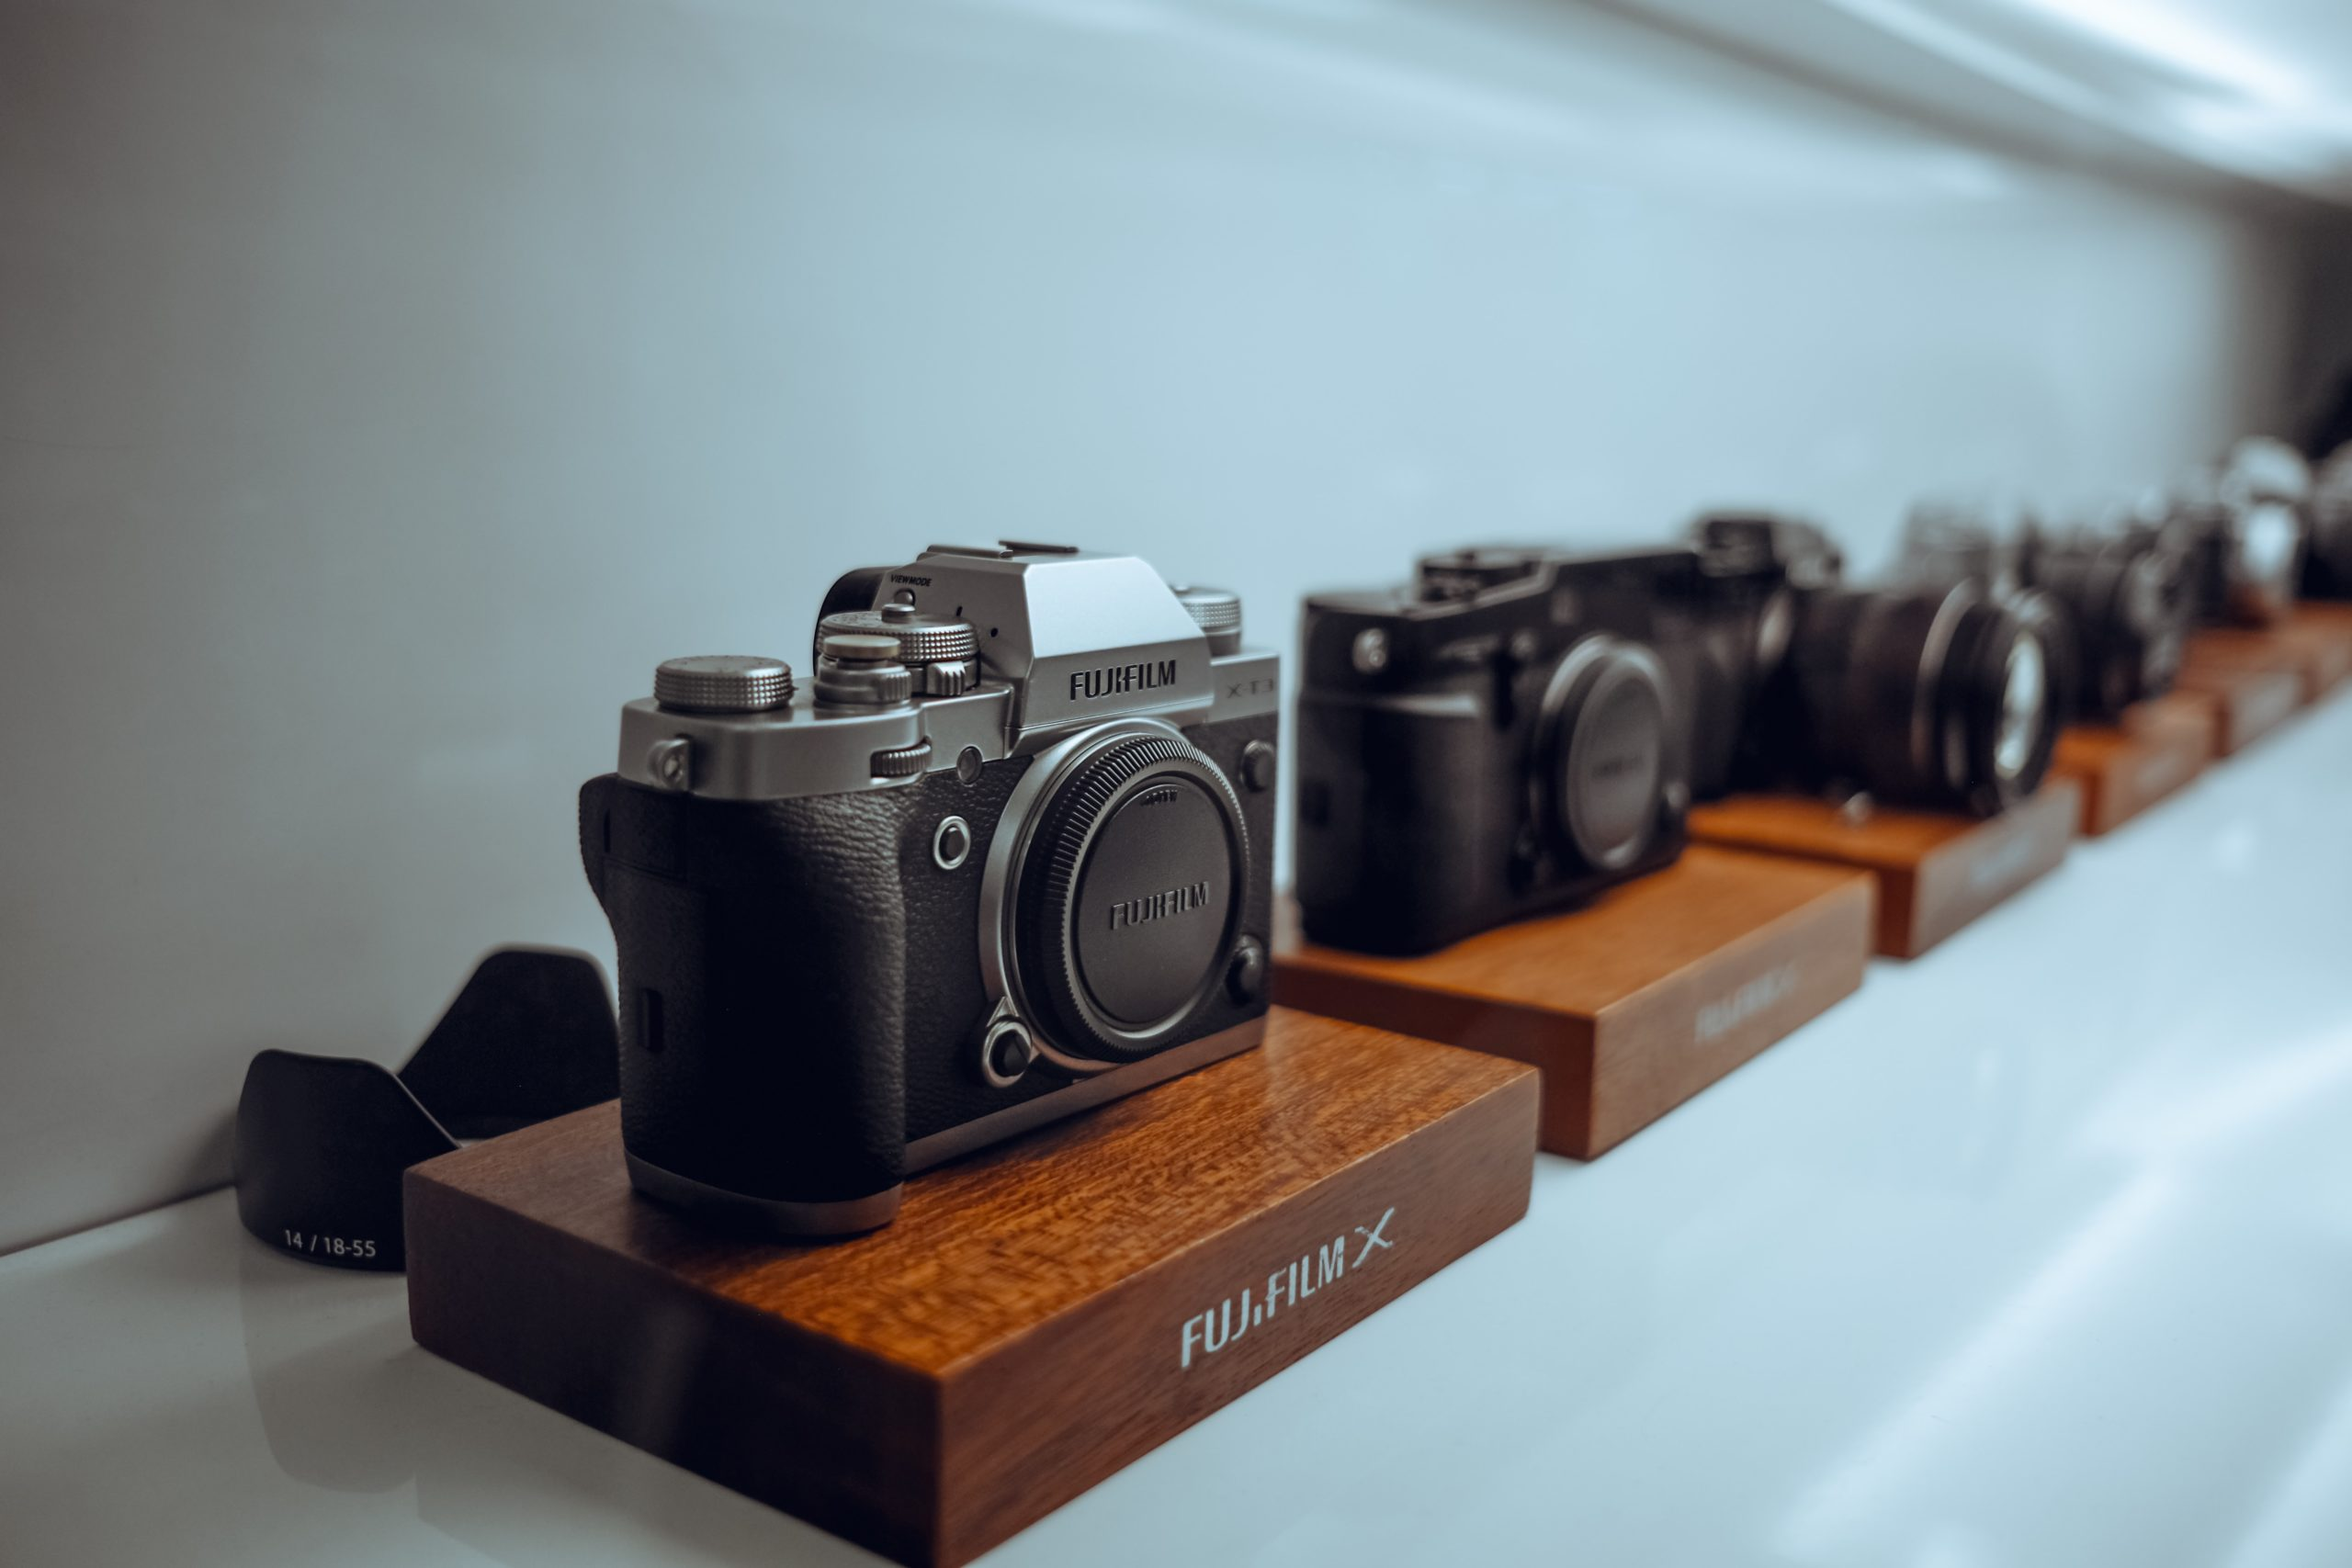 5 Reasons Buying A Second Hand Camera Is a Great Idea